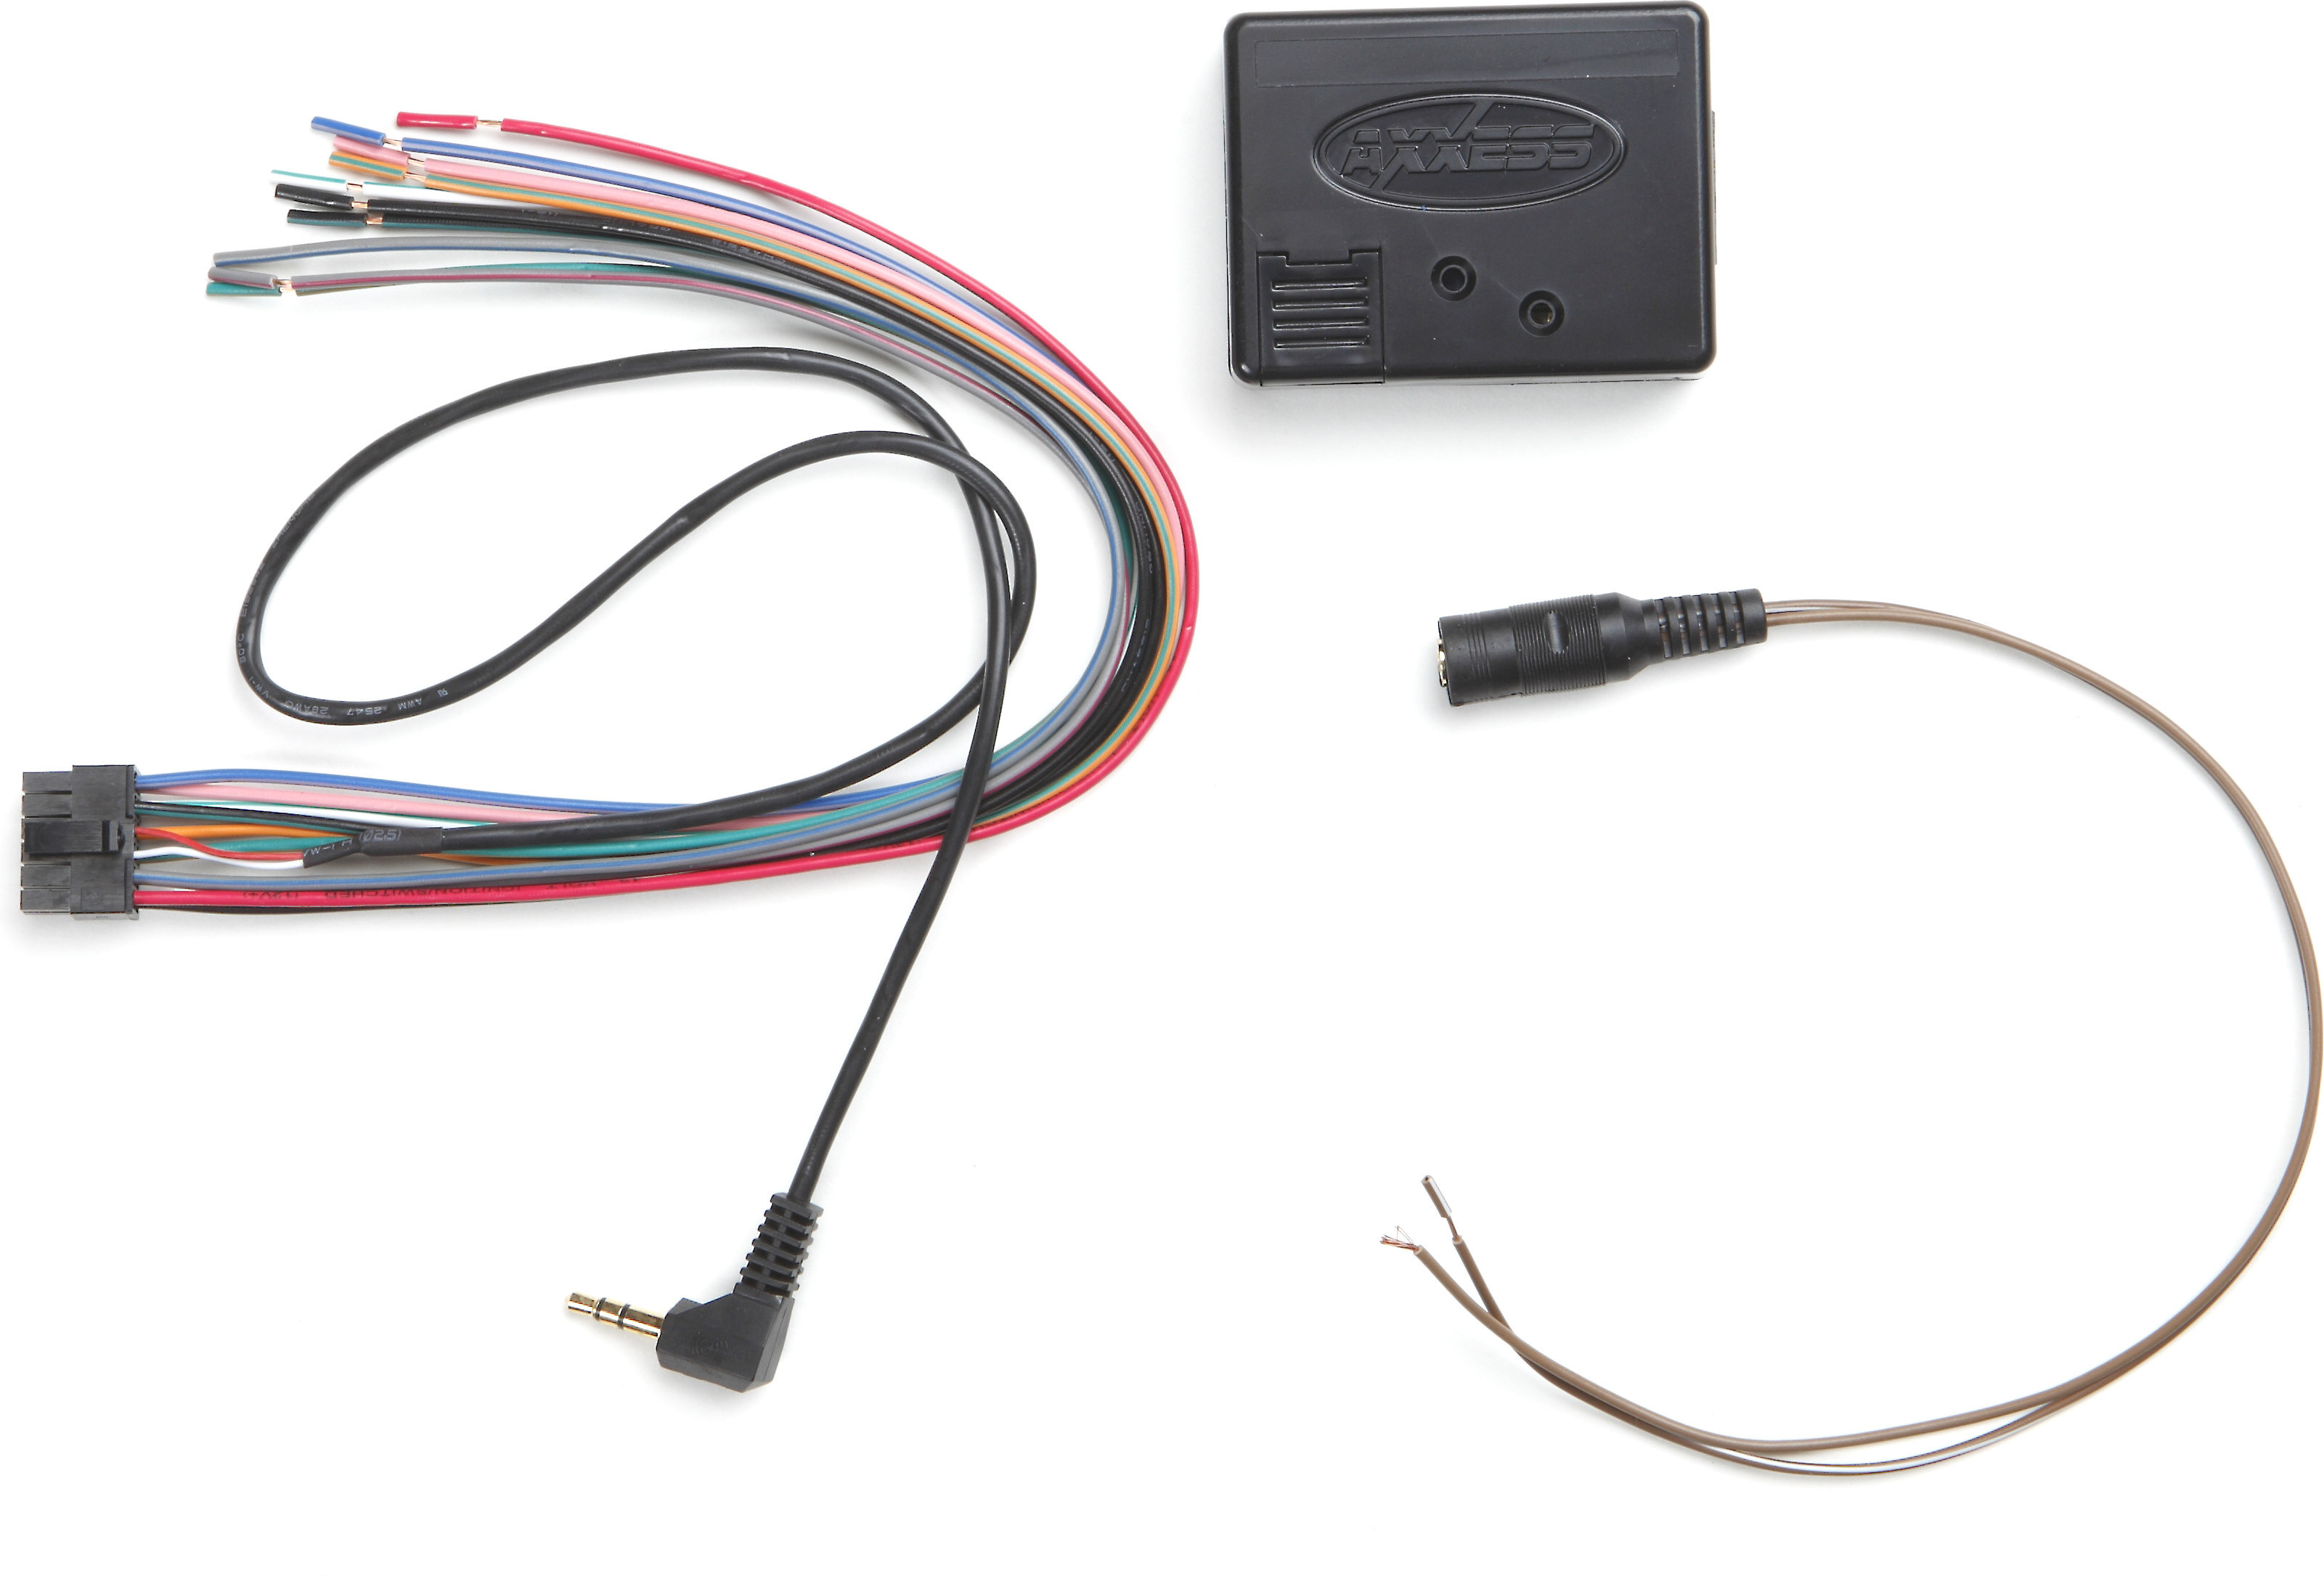 Axxess ASWC-1 Steering Wheel Control Adapter Connects your car's